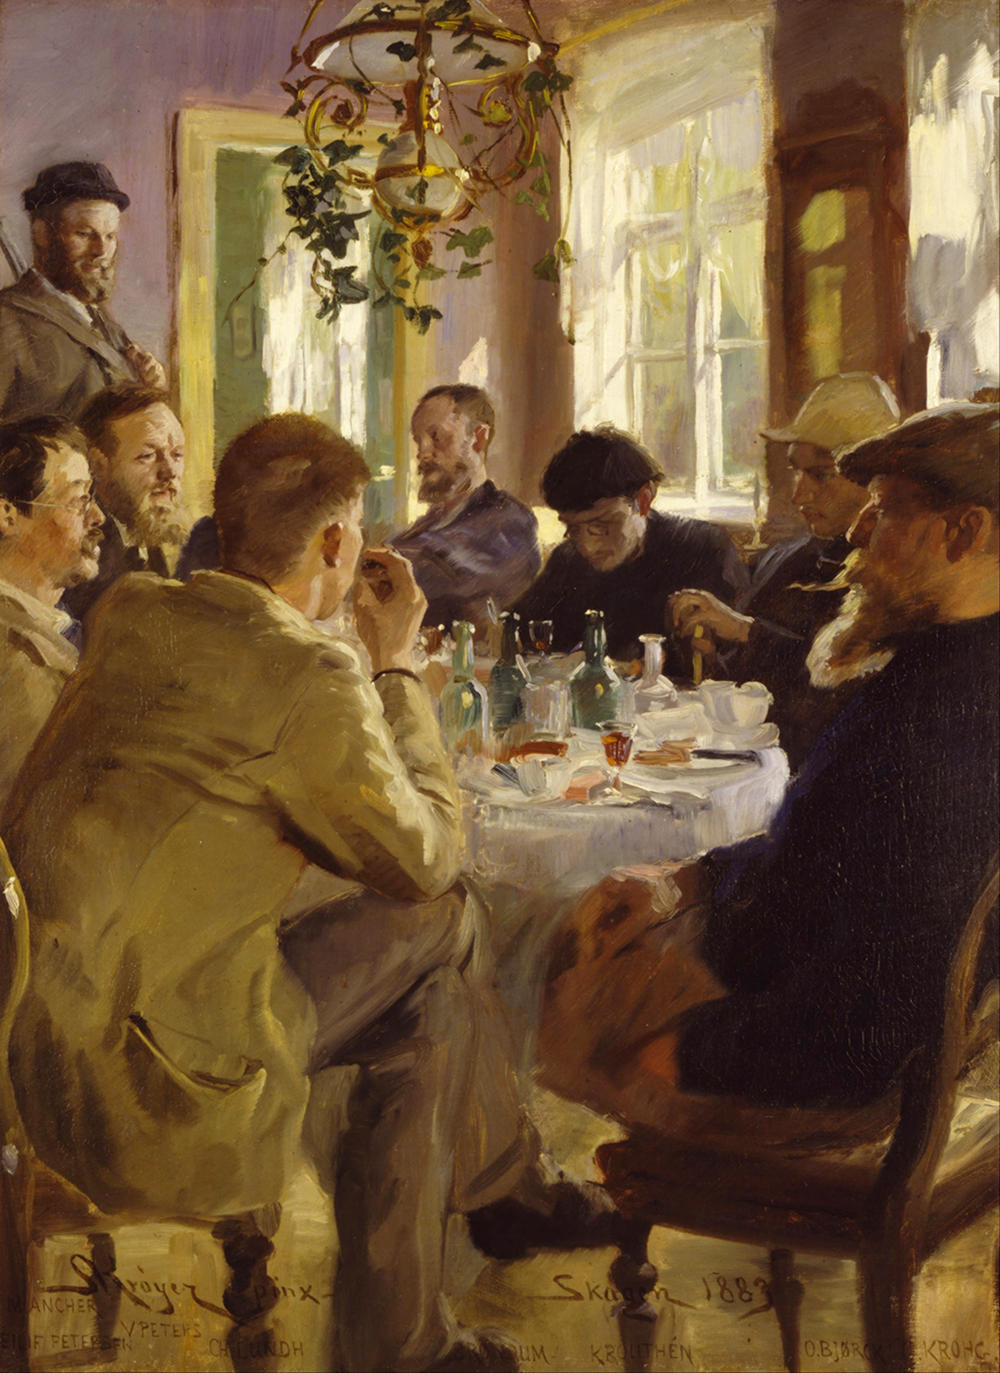 At Lunch by Peder Severin Krøyer, 1883